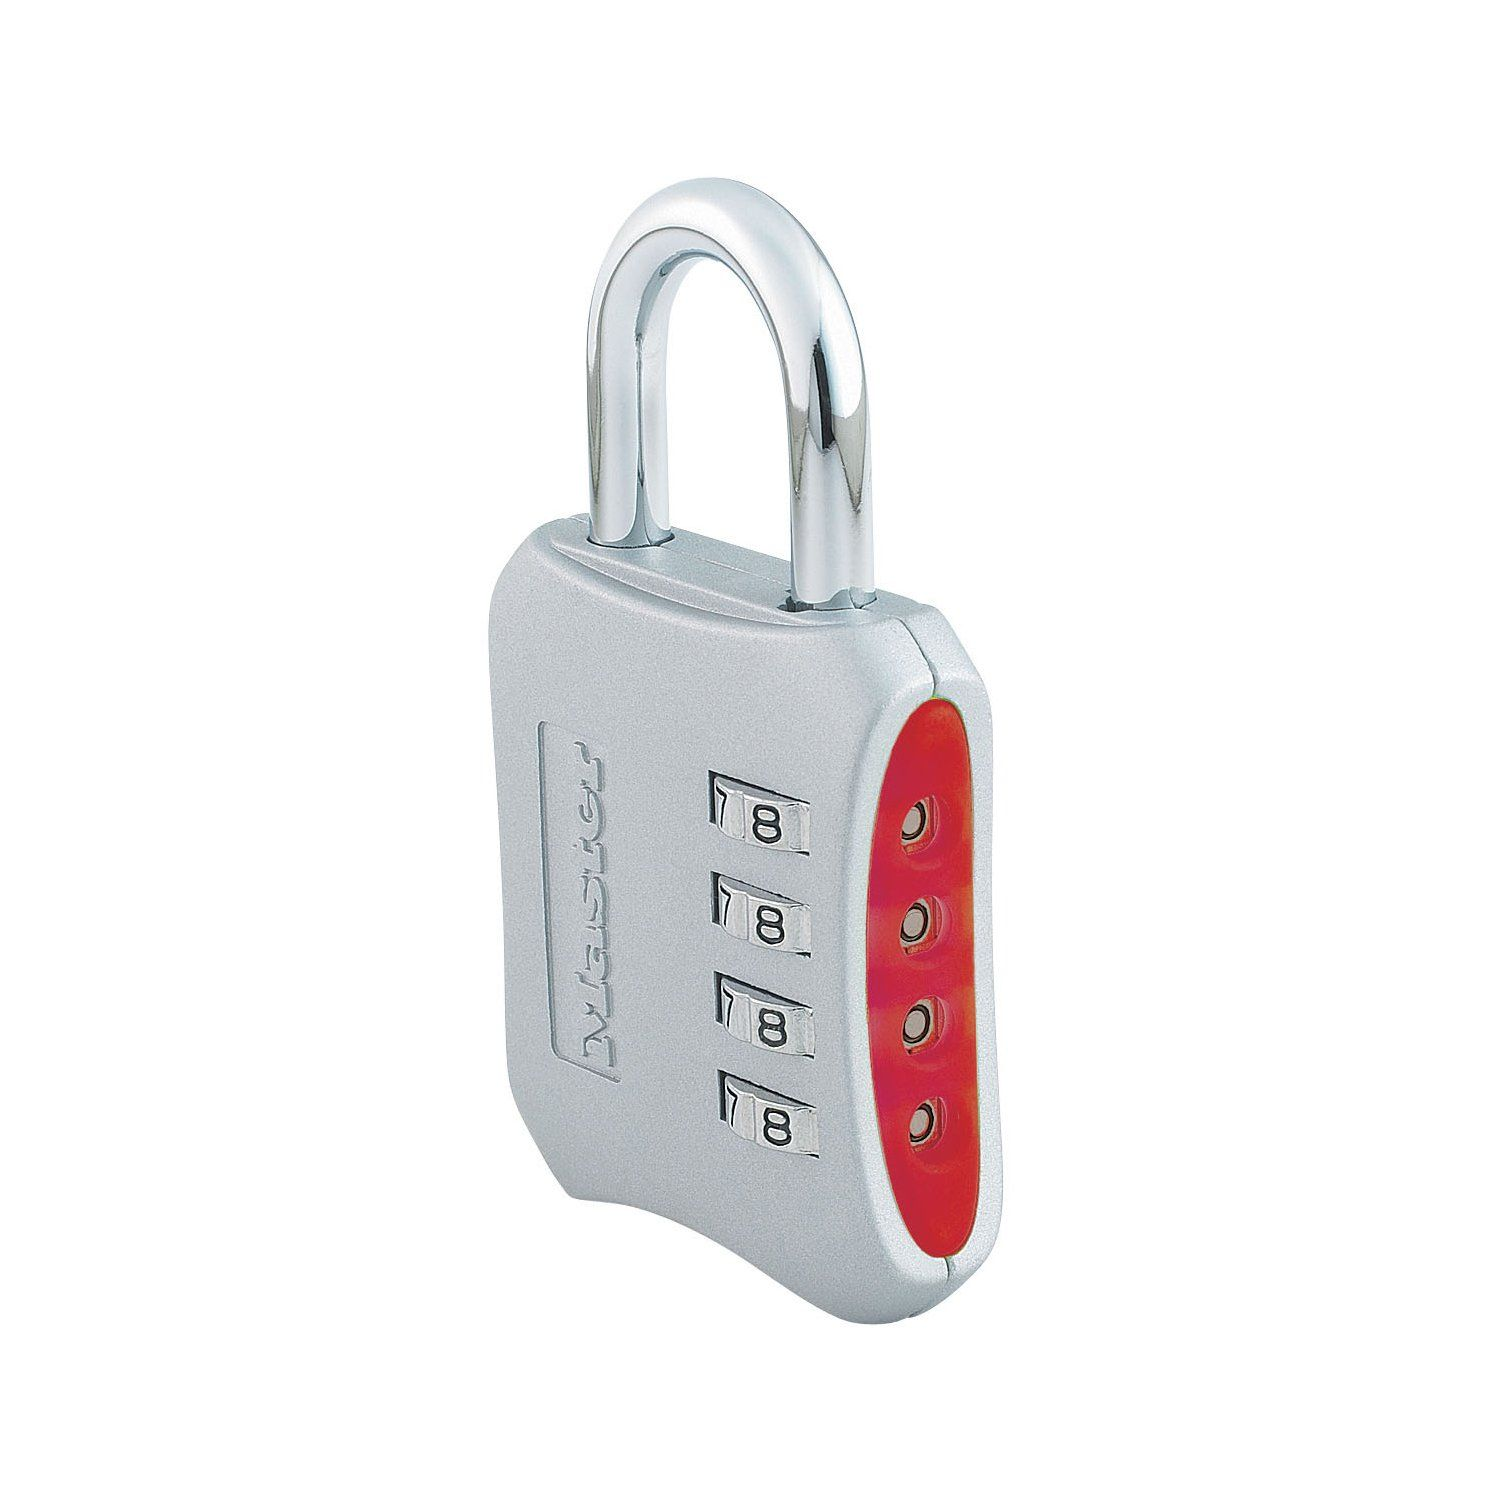 How Can You Get The Combination To A Master Lock